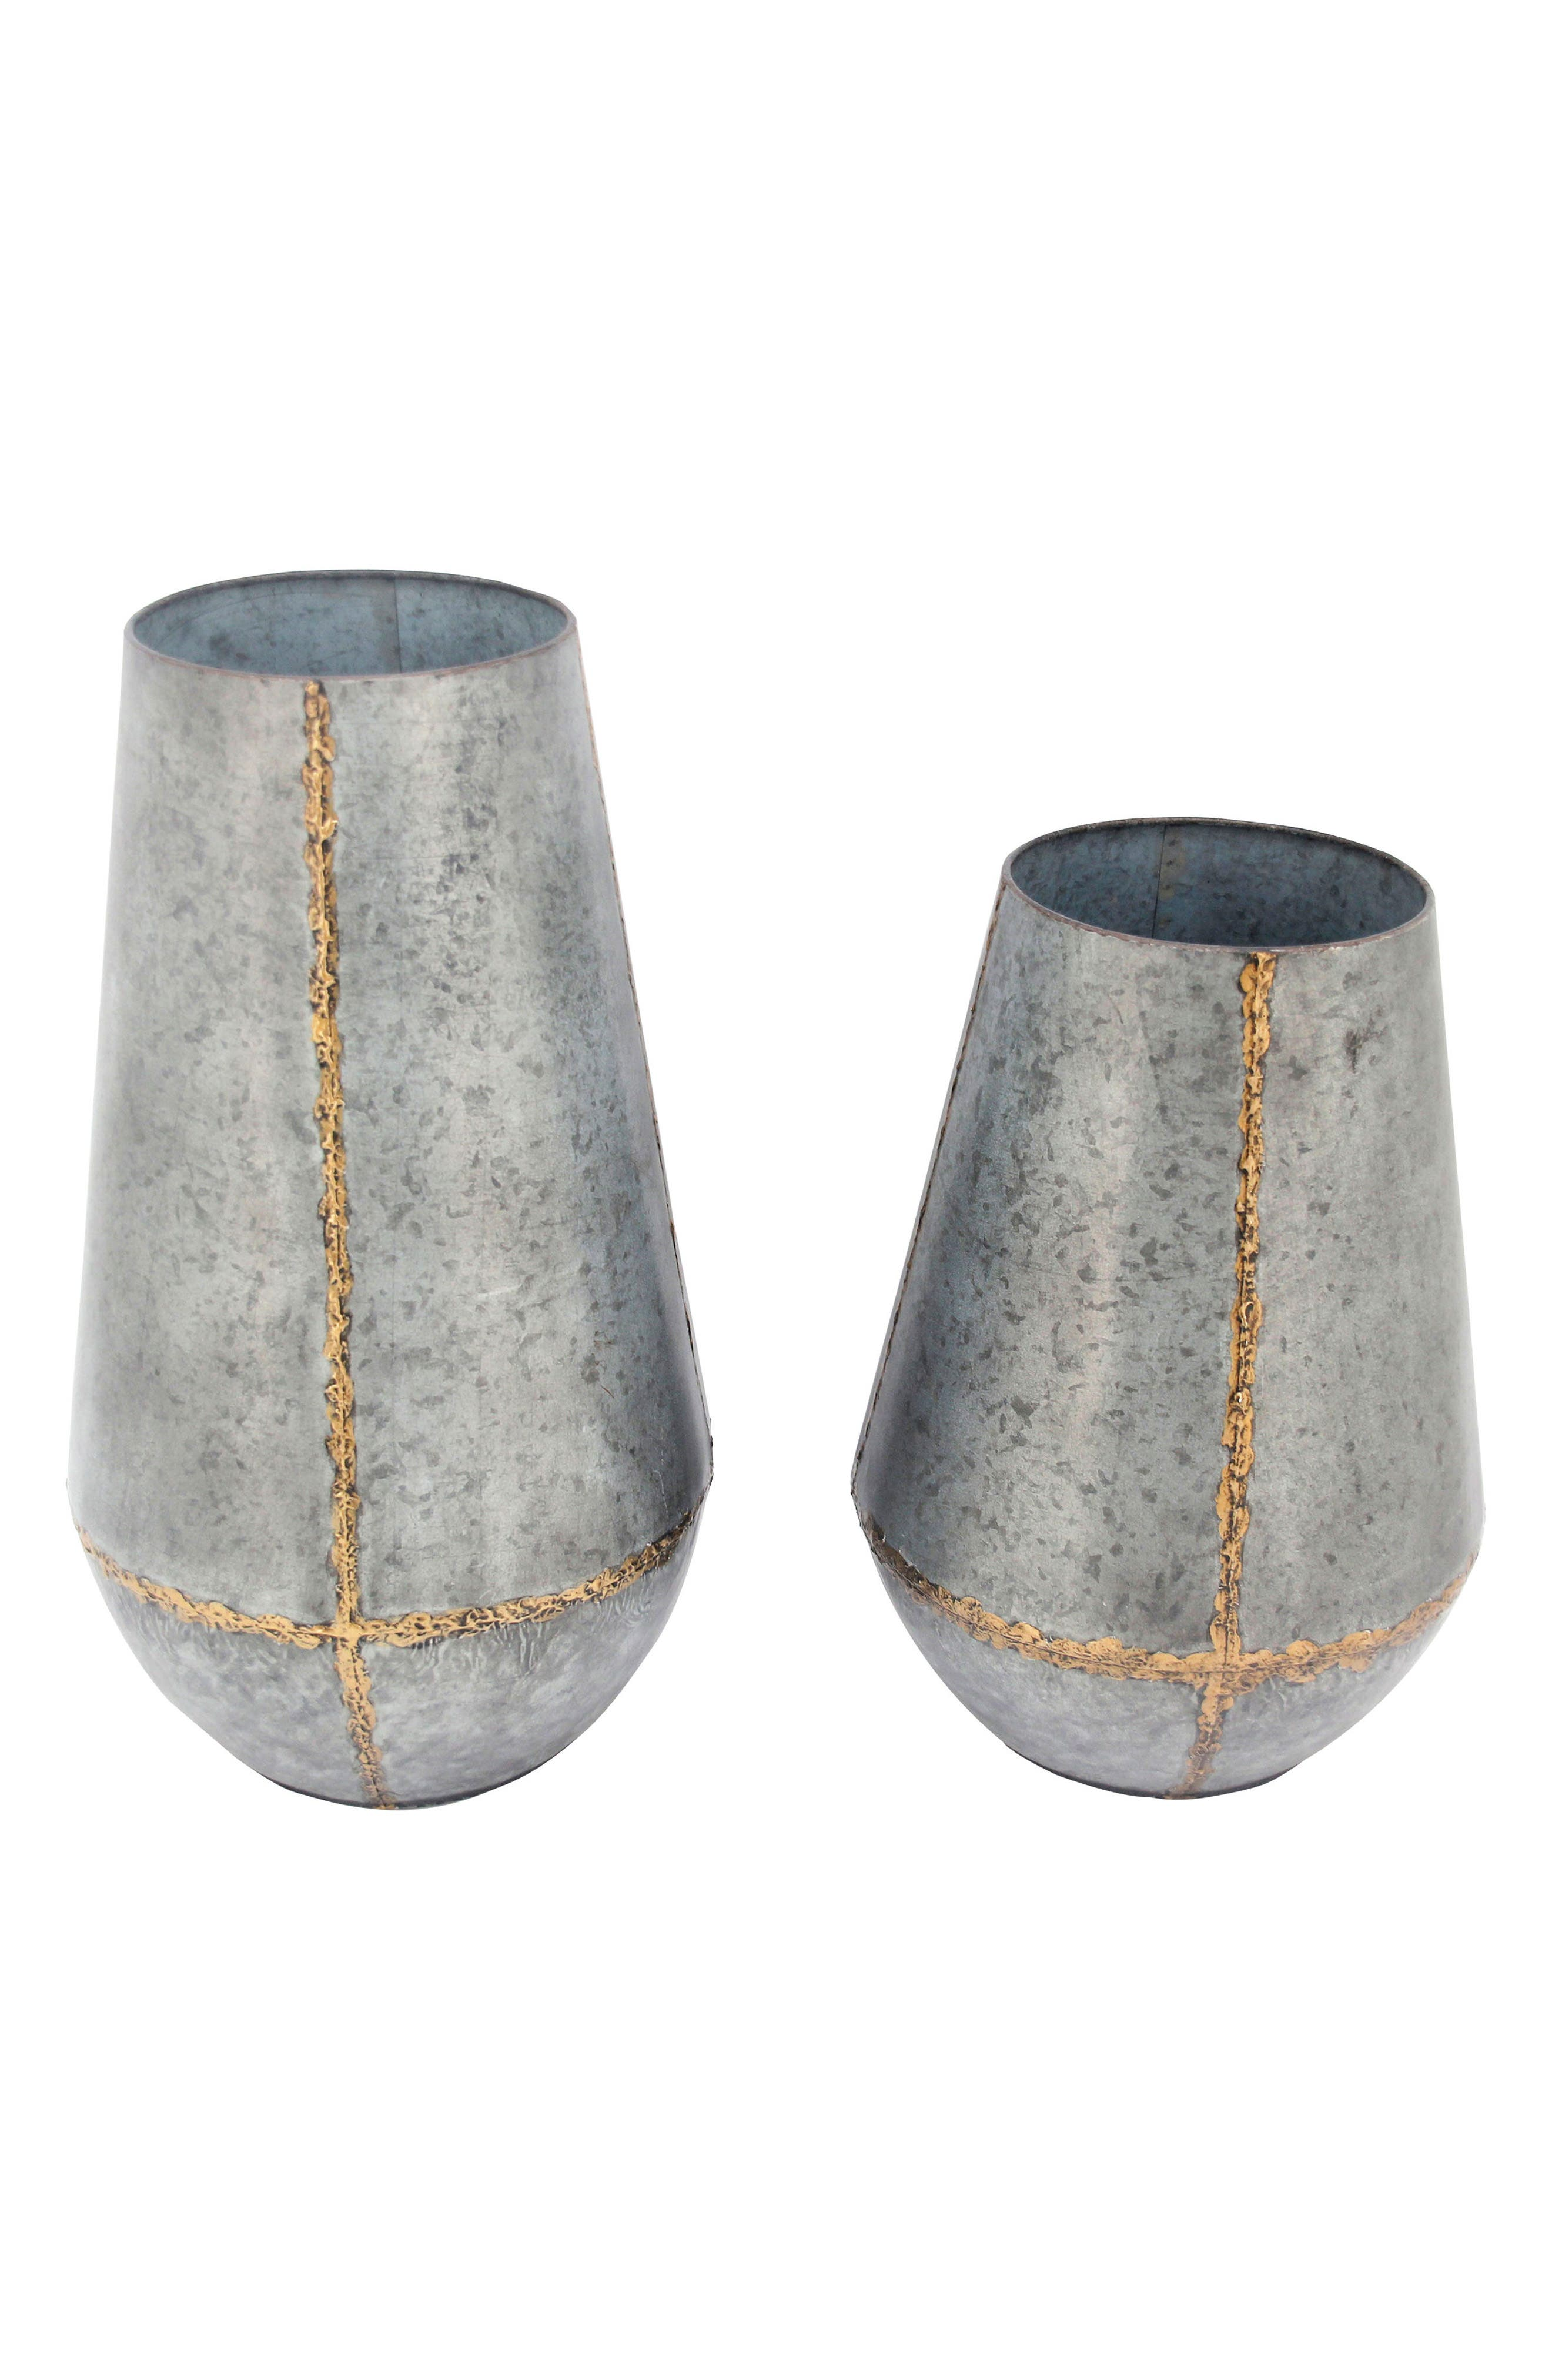 Set of 2 Soldered Metal Vases,                             Main thumbnail 1, color,                             040